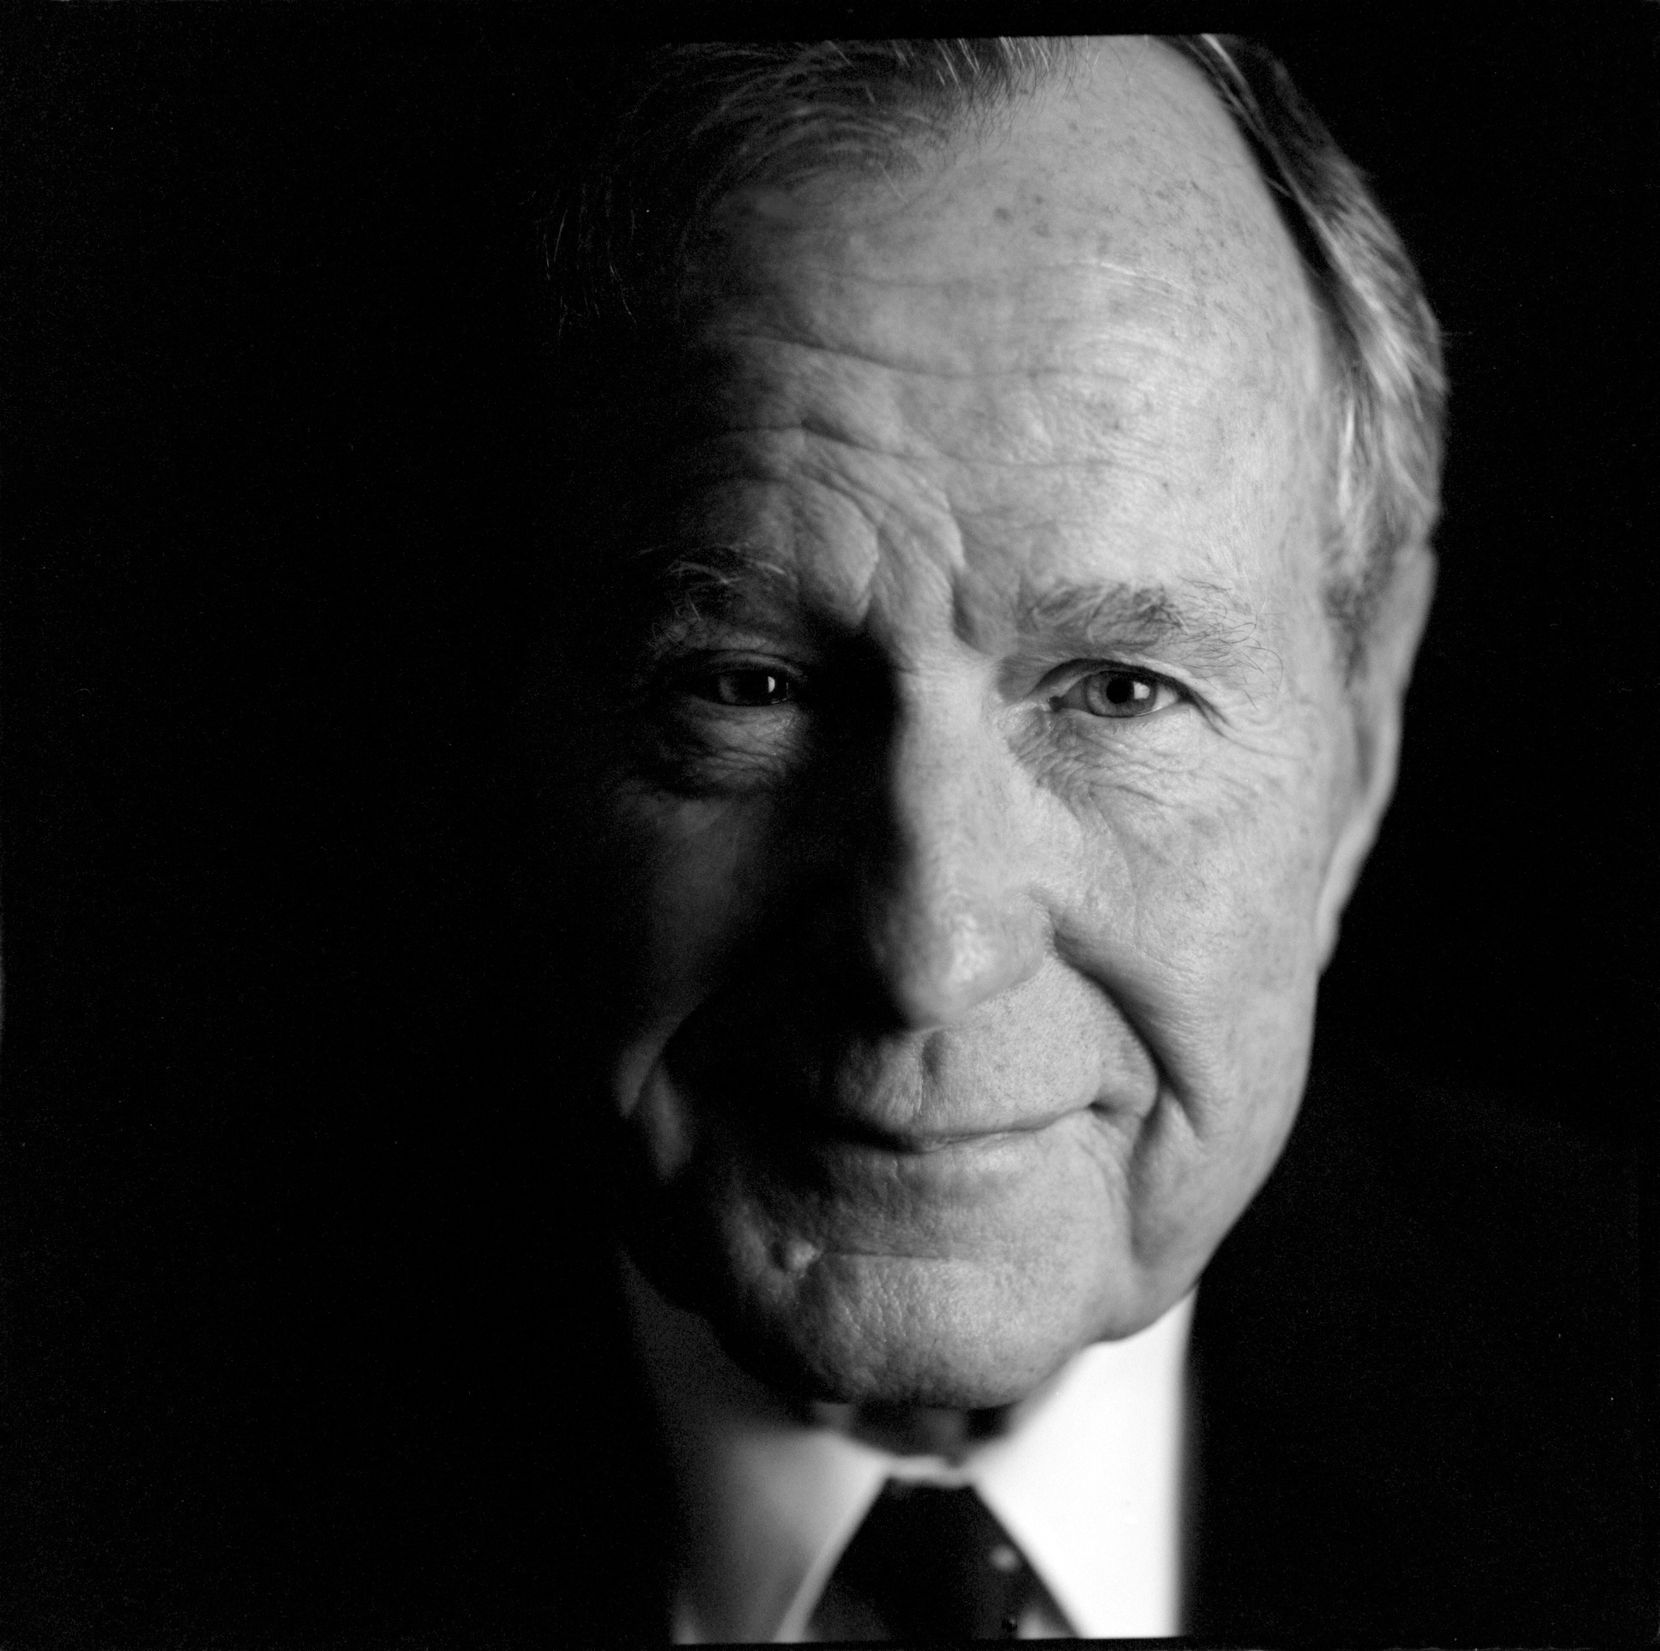 Former President George H. W. Bush in 2002 at the George Bush Presidential Library and Museum in College Station, Texas.